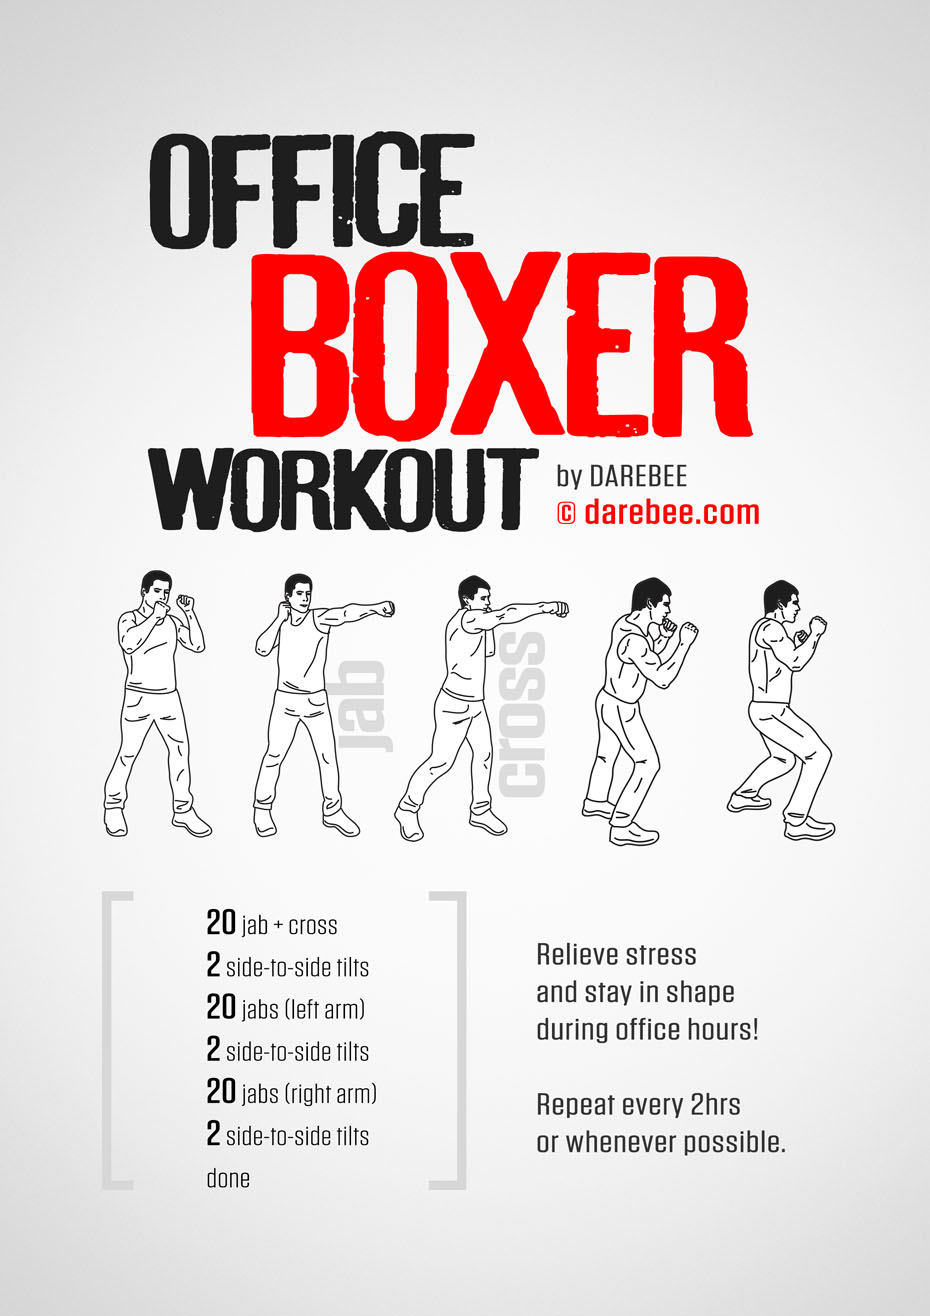 Photo gym boxing images design plan home floor